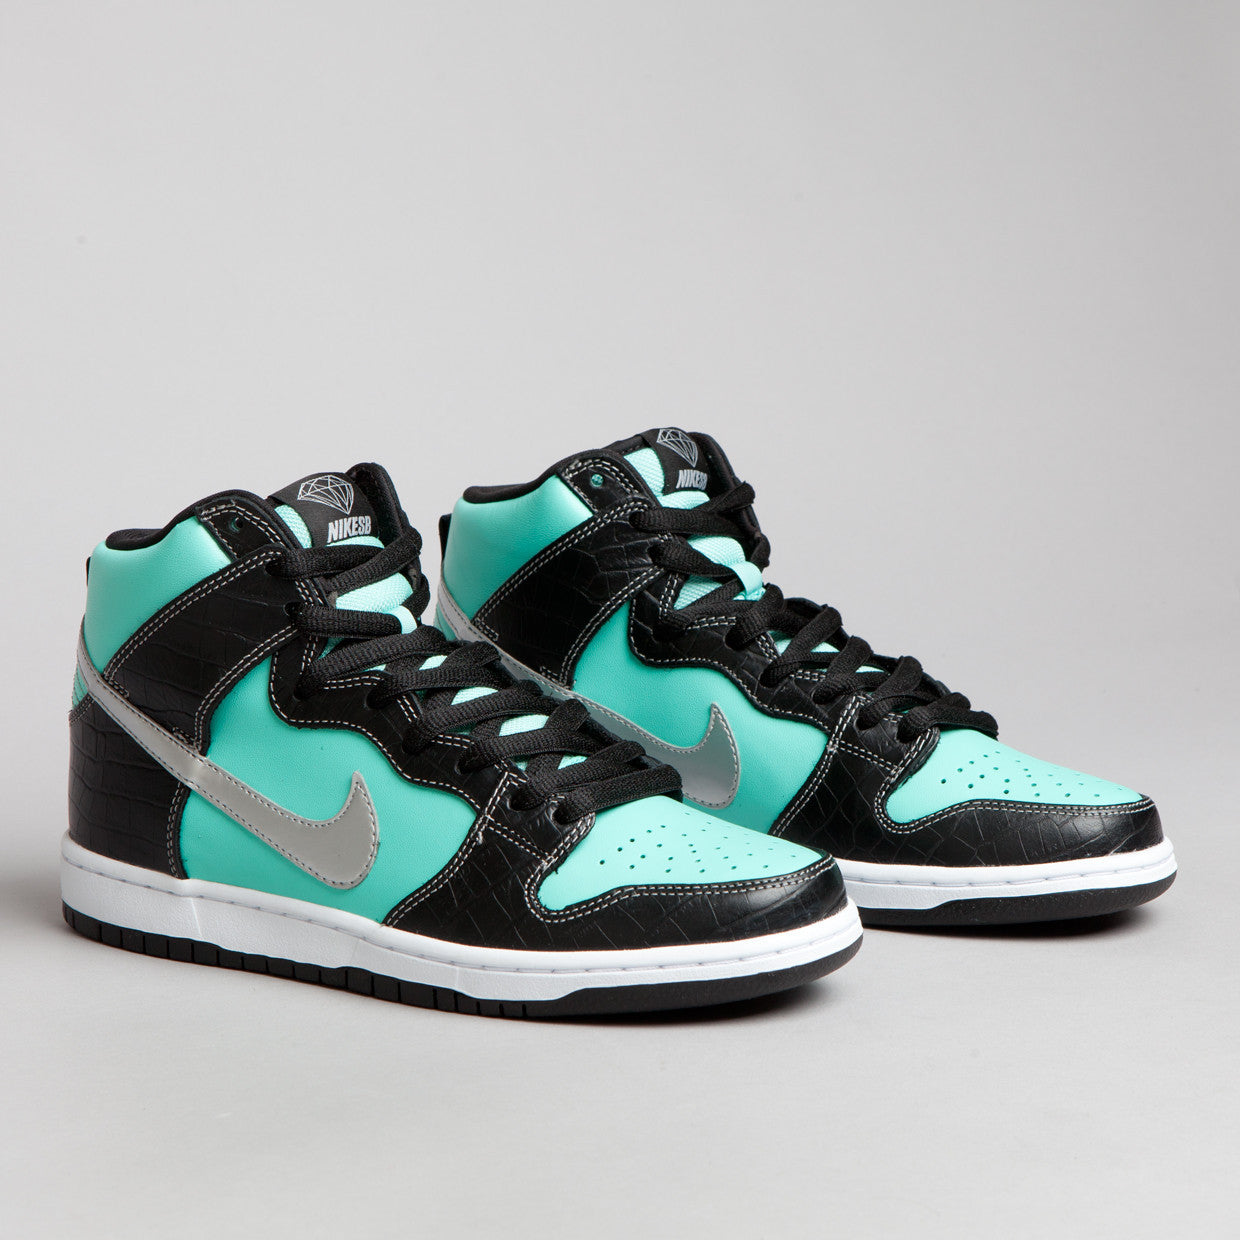 Nike SB Dunk High Premium Aqua / Chrome - Black